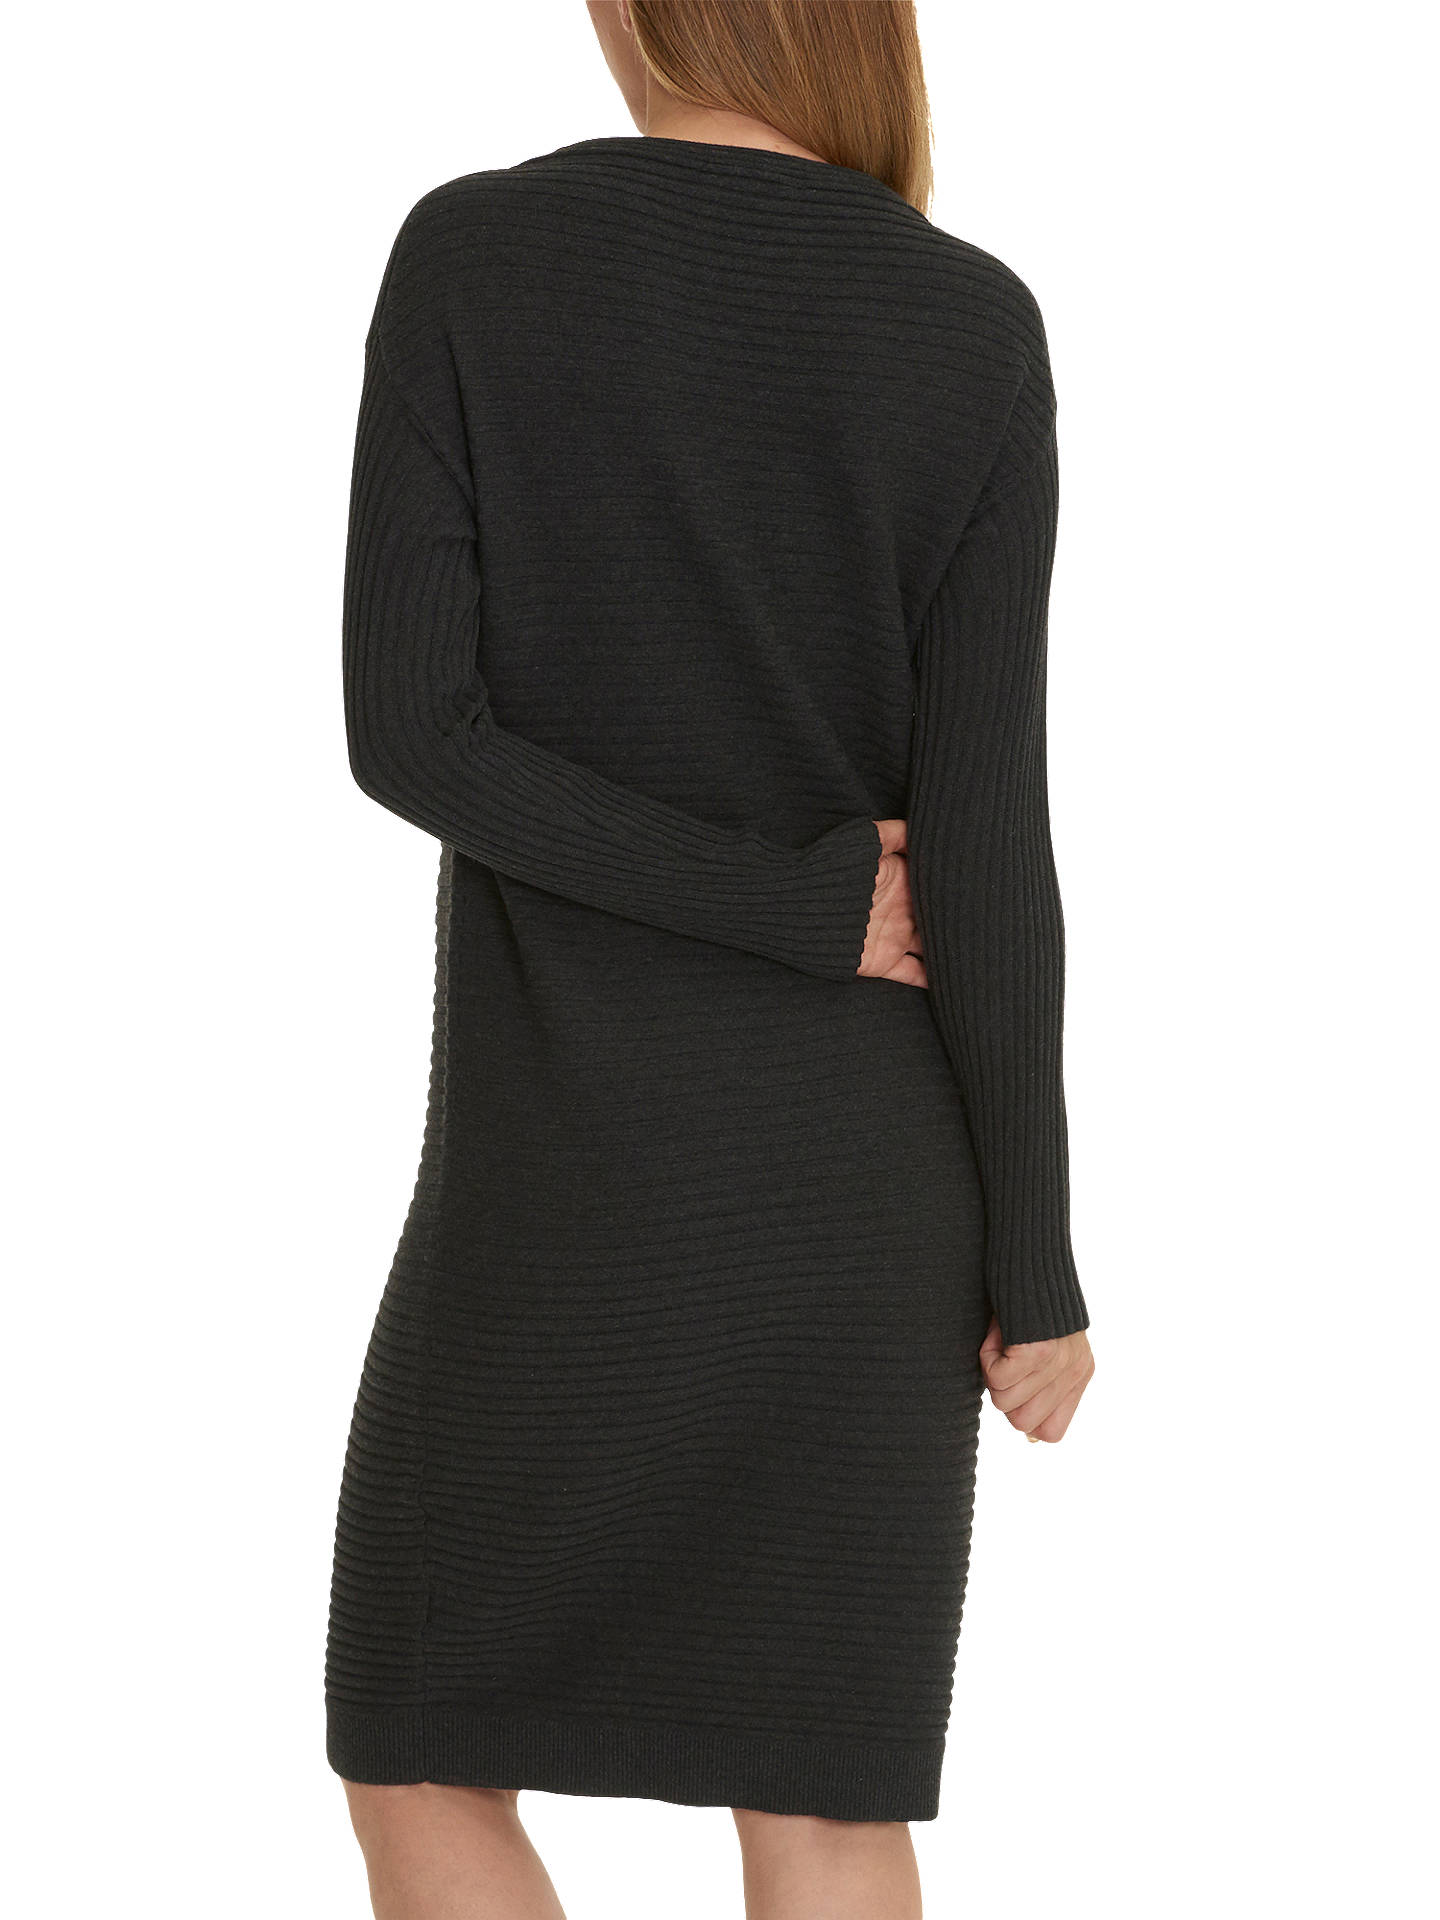 BuyBetty Barclay Ribbed Knit Dress, Dark Grey Melange, 8 Online at johnlewis.com